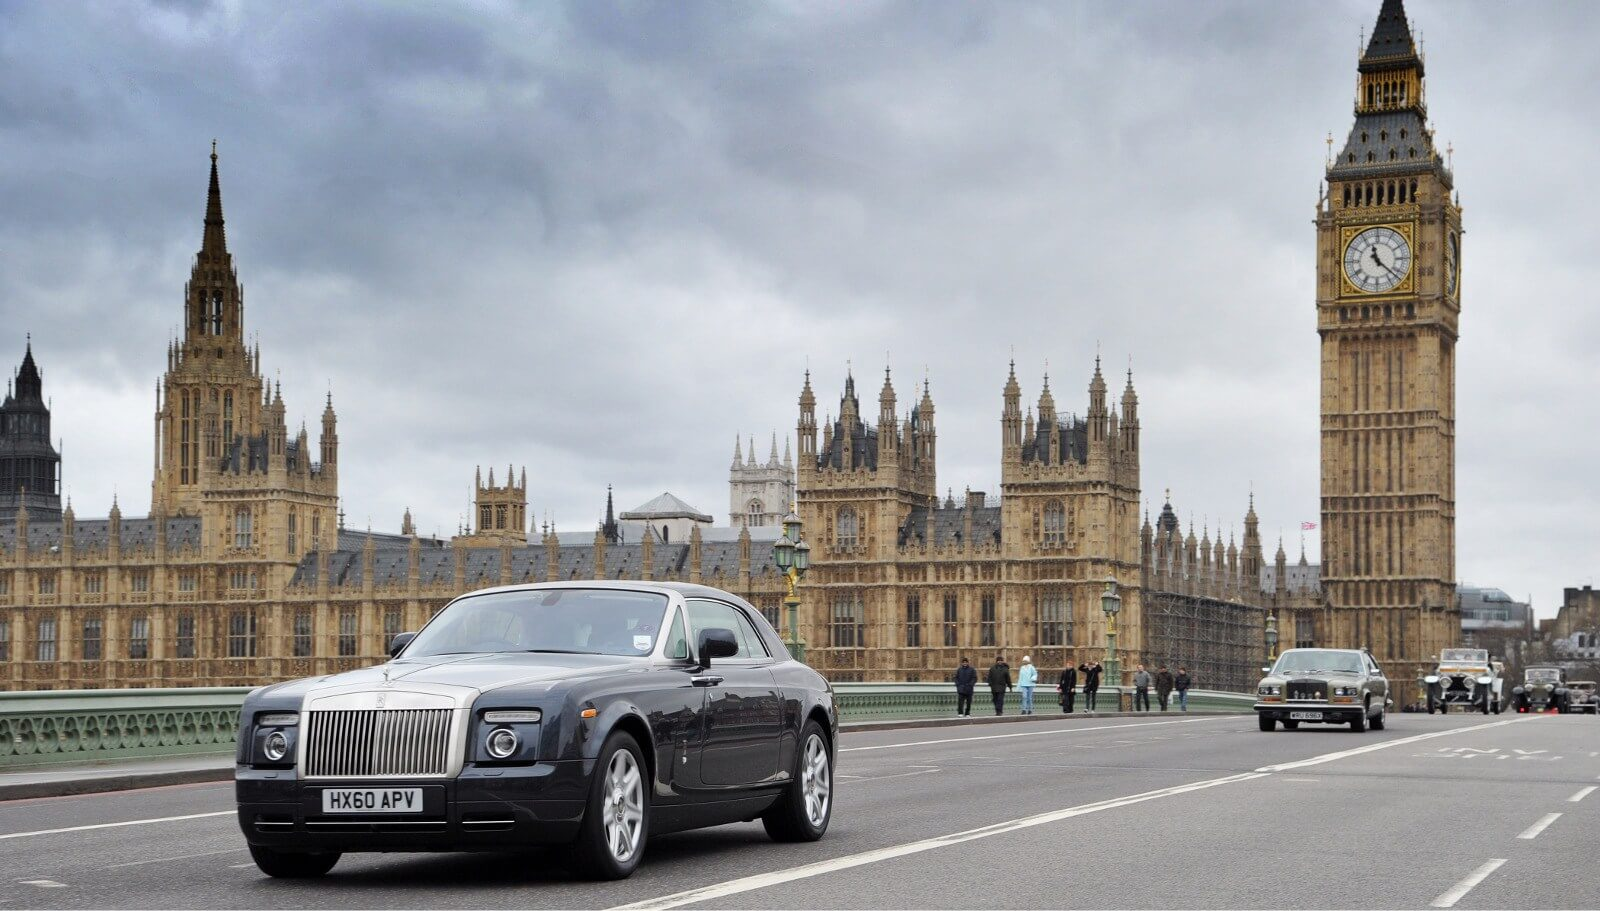 Fastest Car In The World Wallpaper 2015 10 Luxury Things To Do In London Ealuxe Com